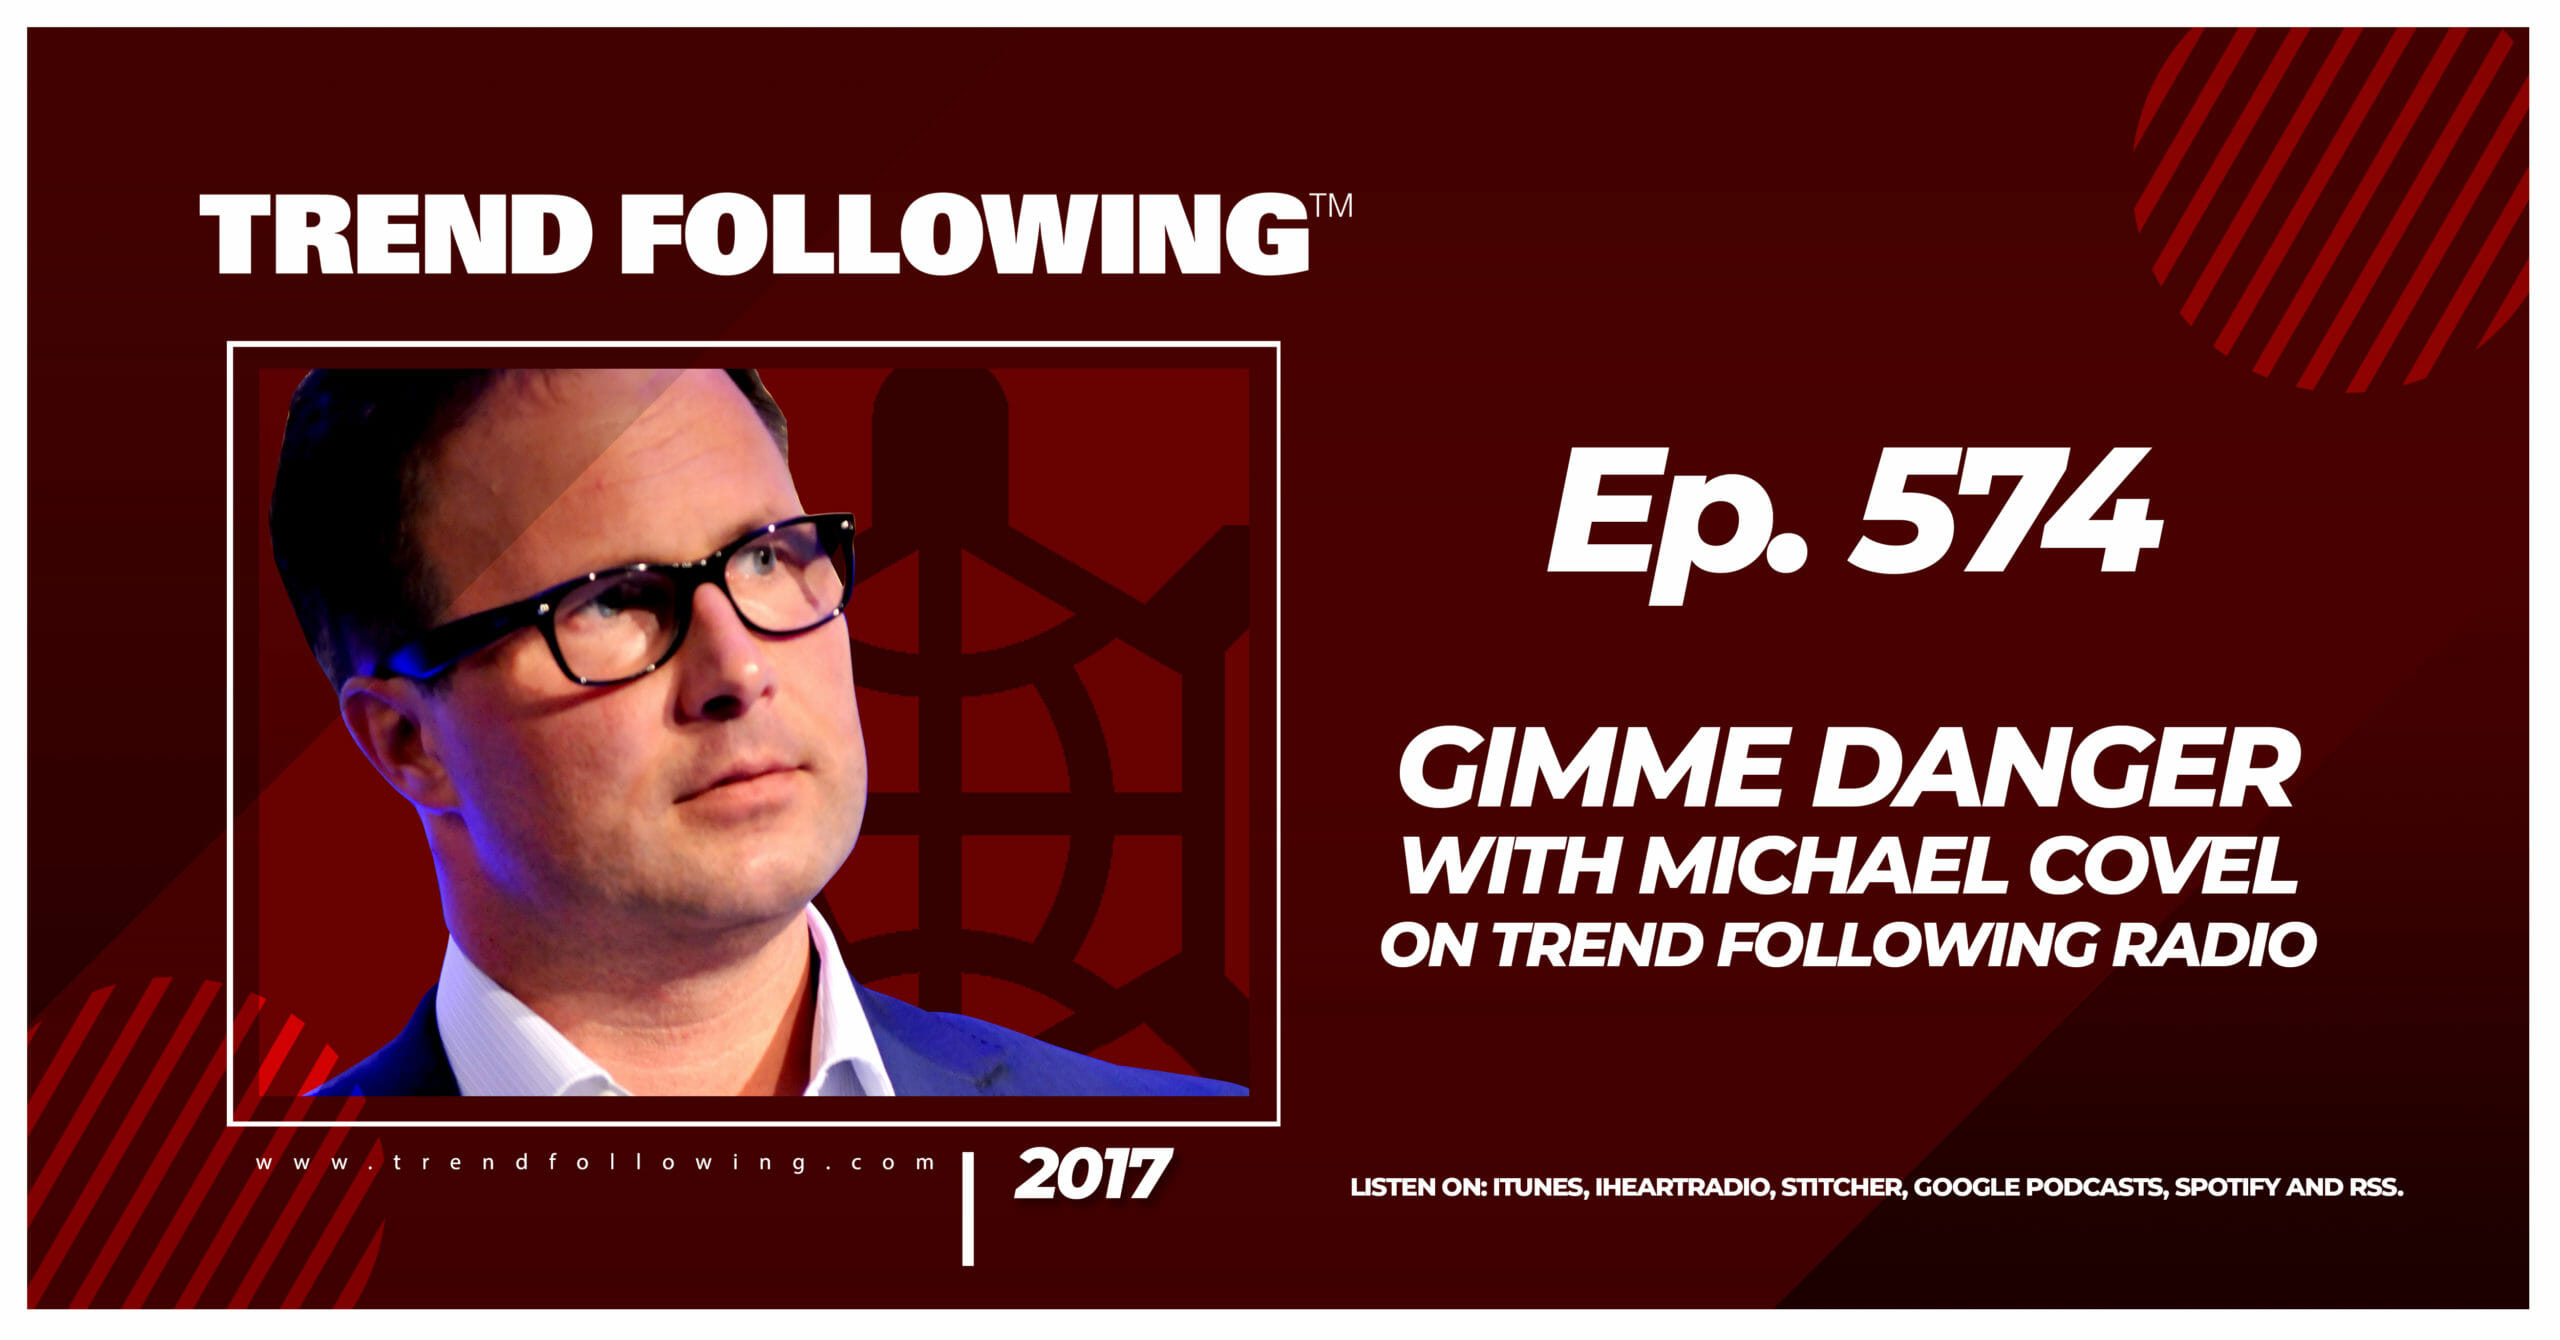 Gimme Danger with Michael Covel on Trend Following Radio